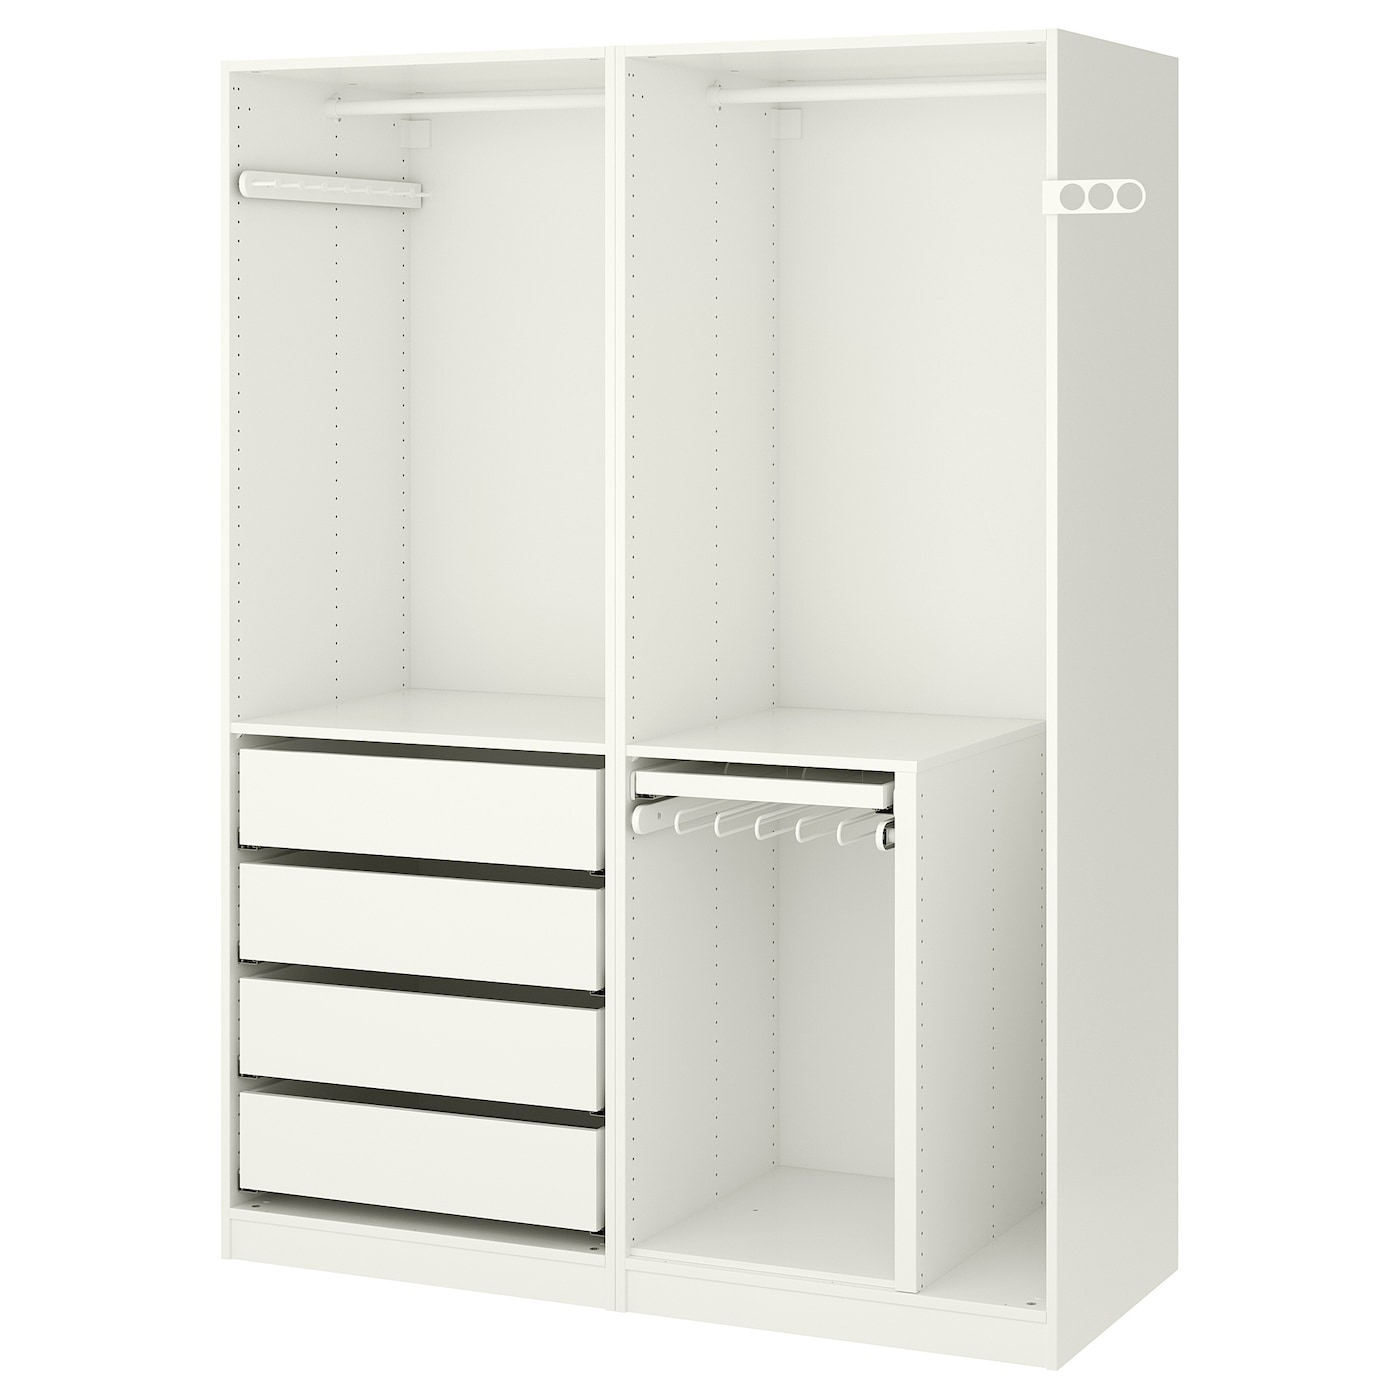 info white effect auli wardrobe stained oak ceswire pages nouveau sekken awesome penderie ikea pax armoire